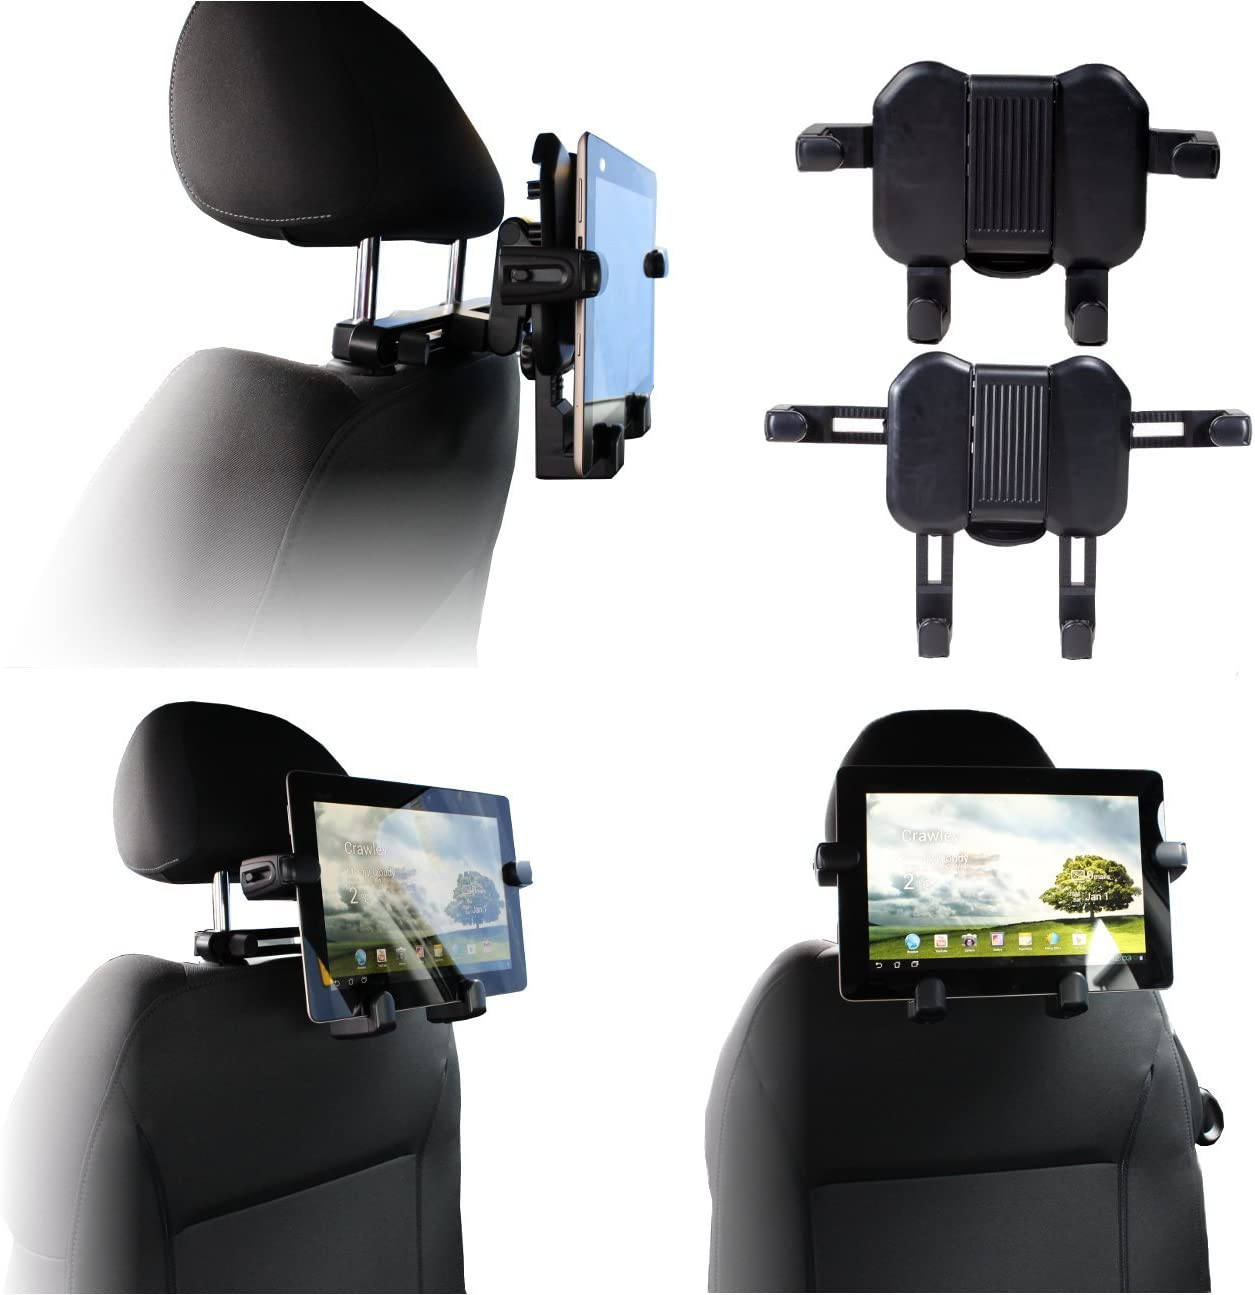 Navitech portable DVD player / Netbooks / Notebooks / Tablet pc & Laptop in Car Headrest / Back Seat Black Expandable Firm Grip Mount Cradle Compatible With The Apple Mac Book 240B/ A, Mac Book Air, macbook pro 15 inch GH 2.4/2.53/2.66, Apple MacBook Pro, MacBook Pr